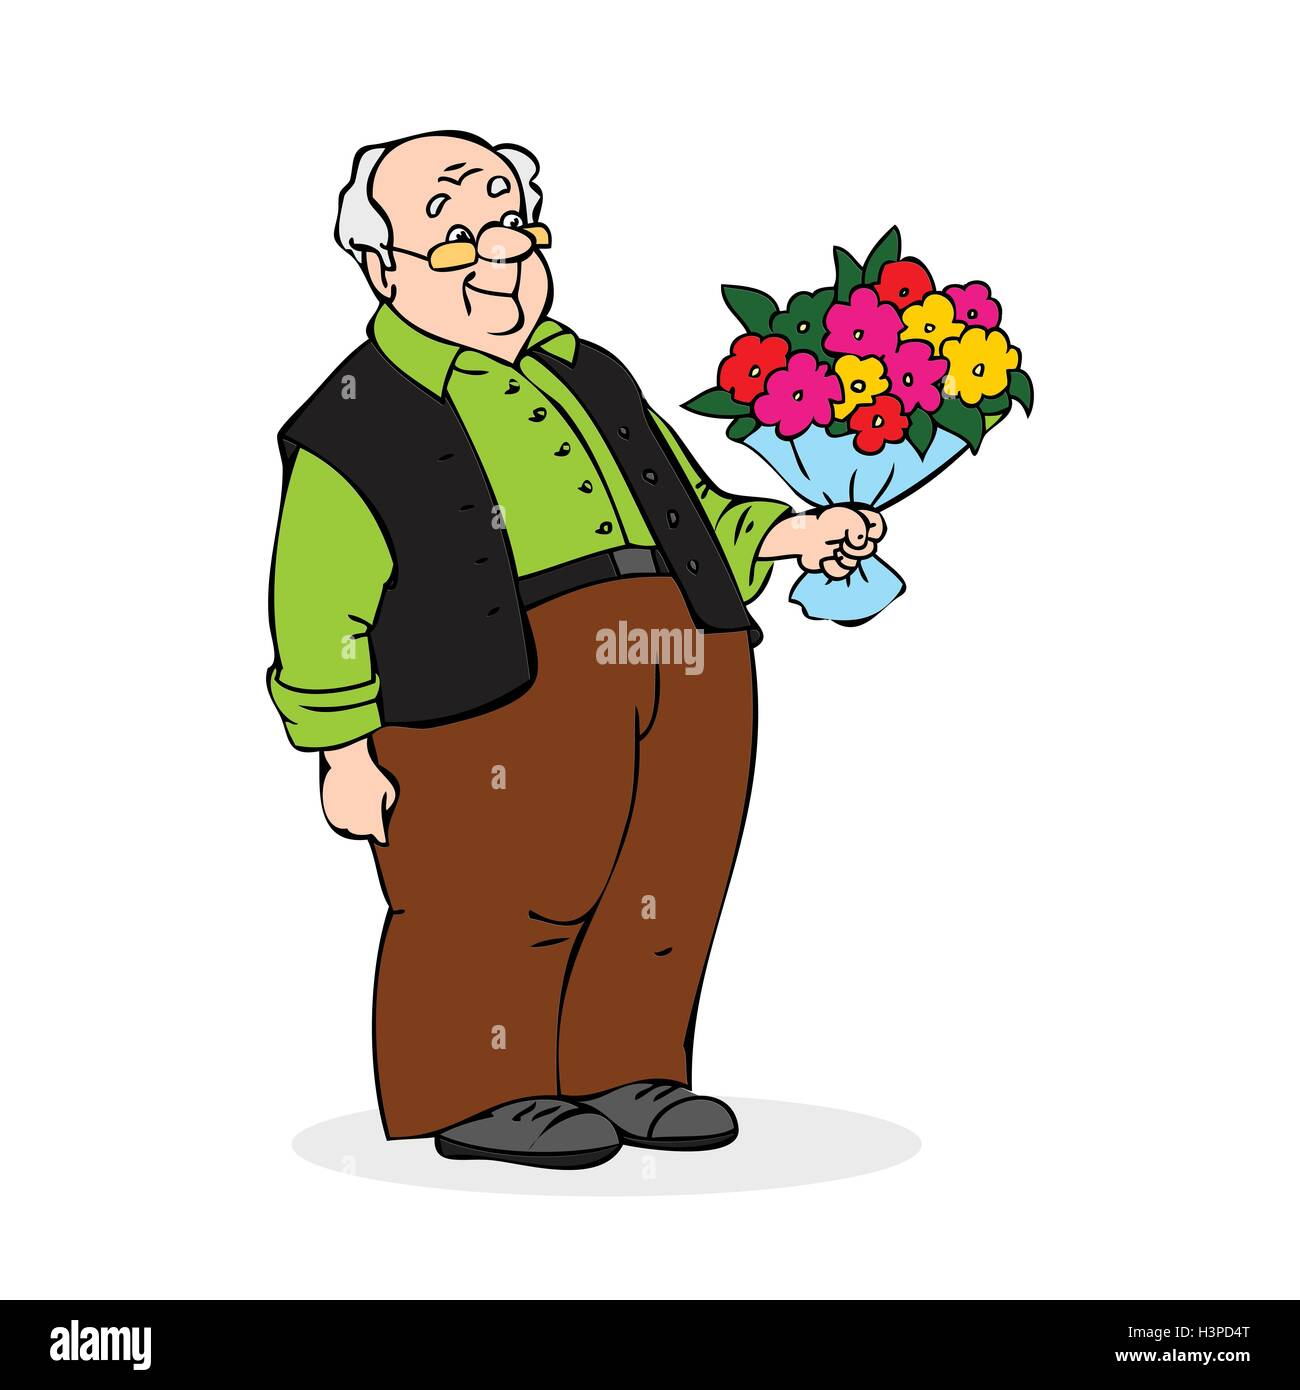 Old man with a bouquet of flowers smiling elderly man with glasses old man with a bouquet of flowers smiling elderly man with glasses colorful cartoon vector illustration on white background izmirmasajfo